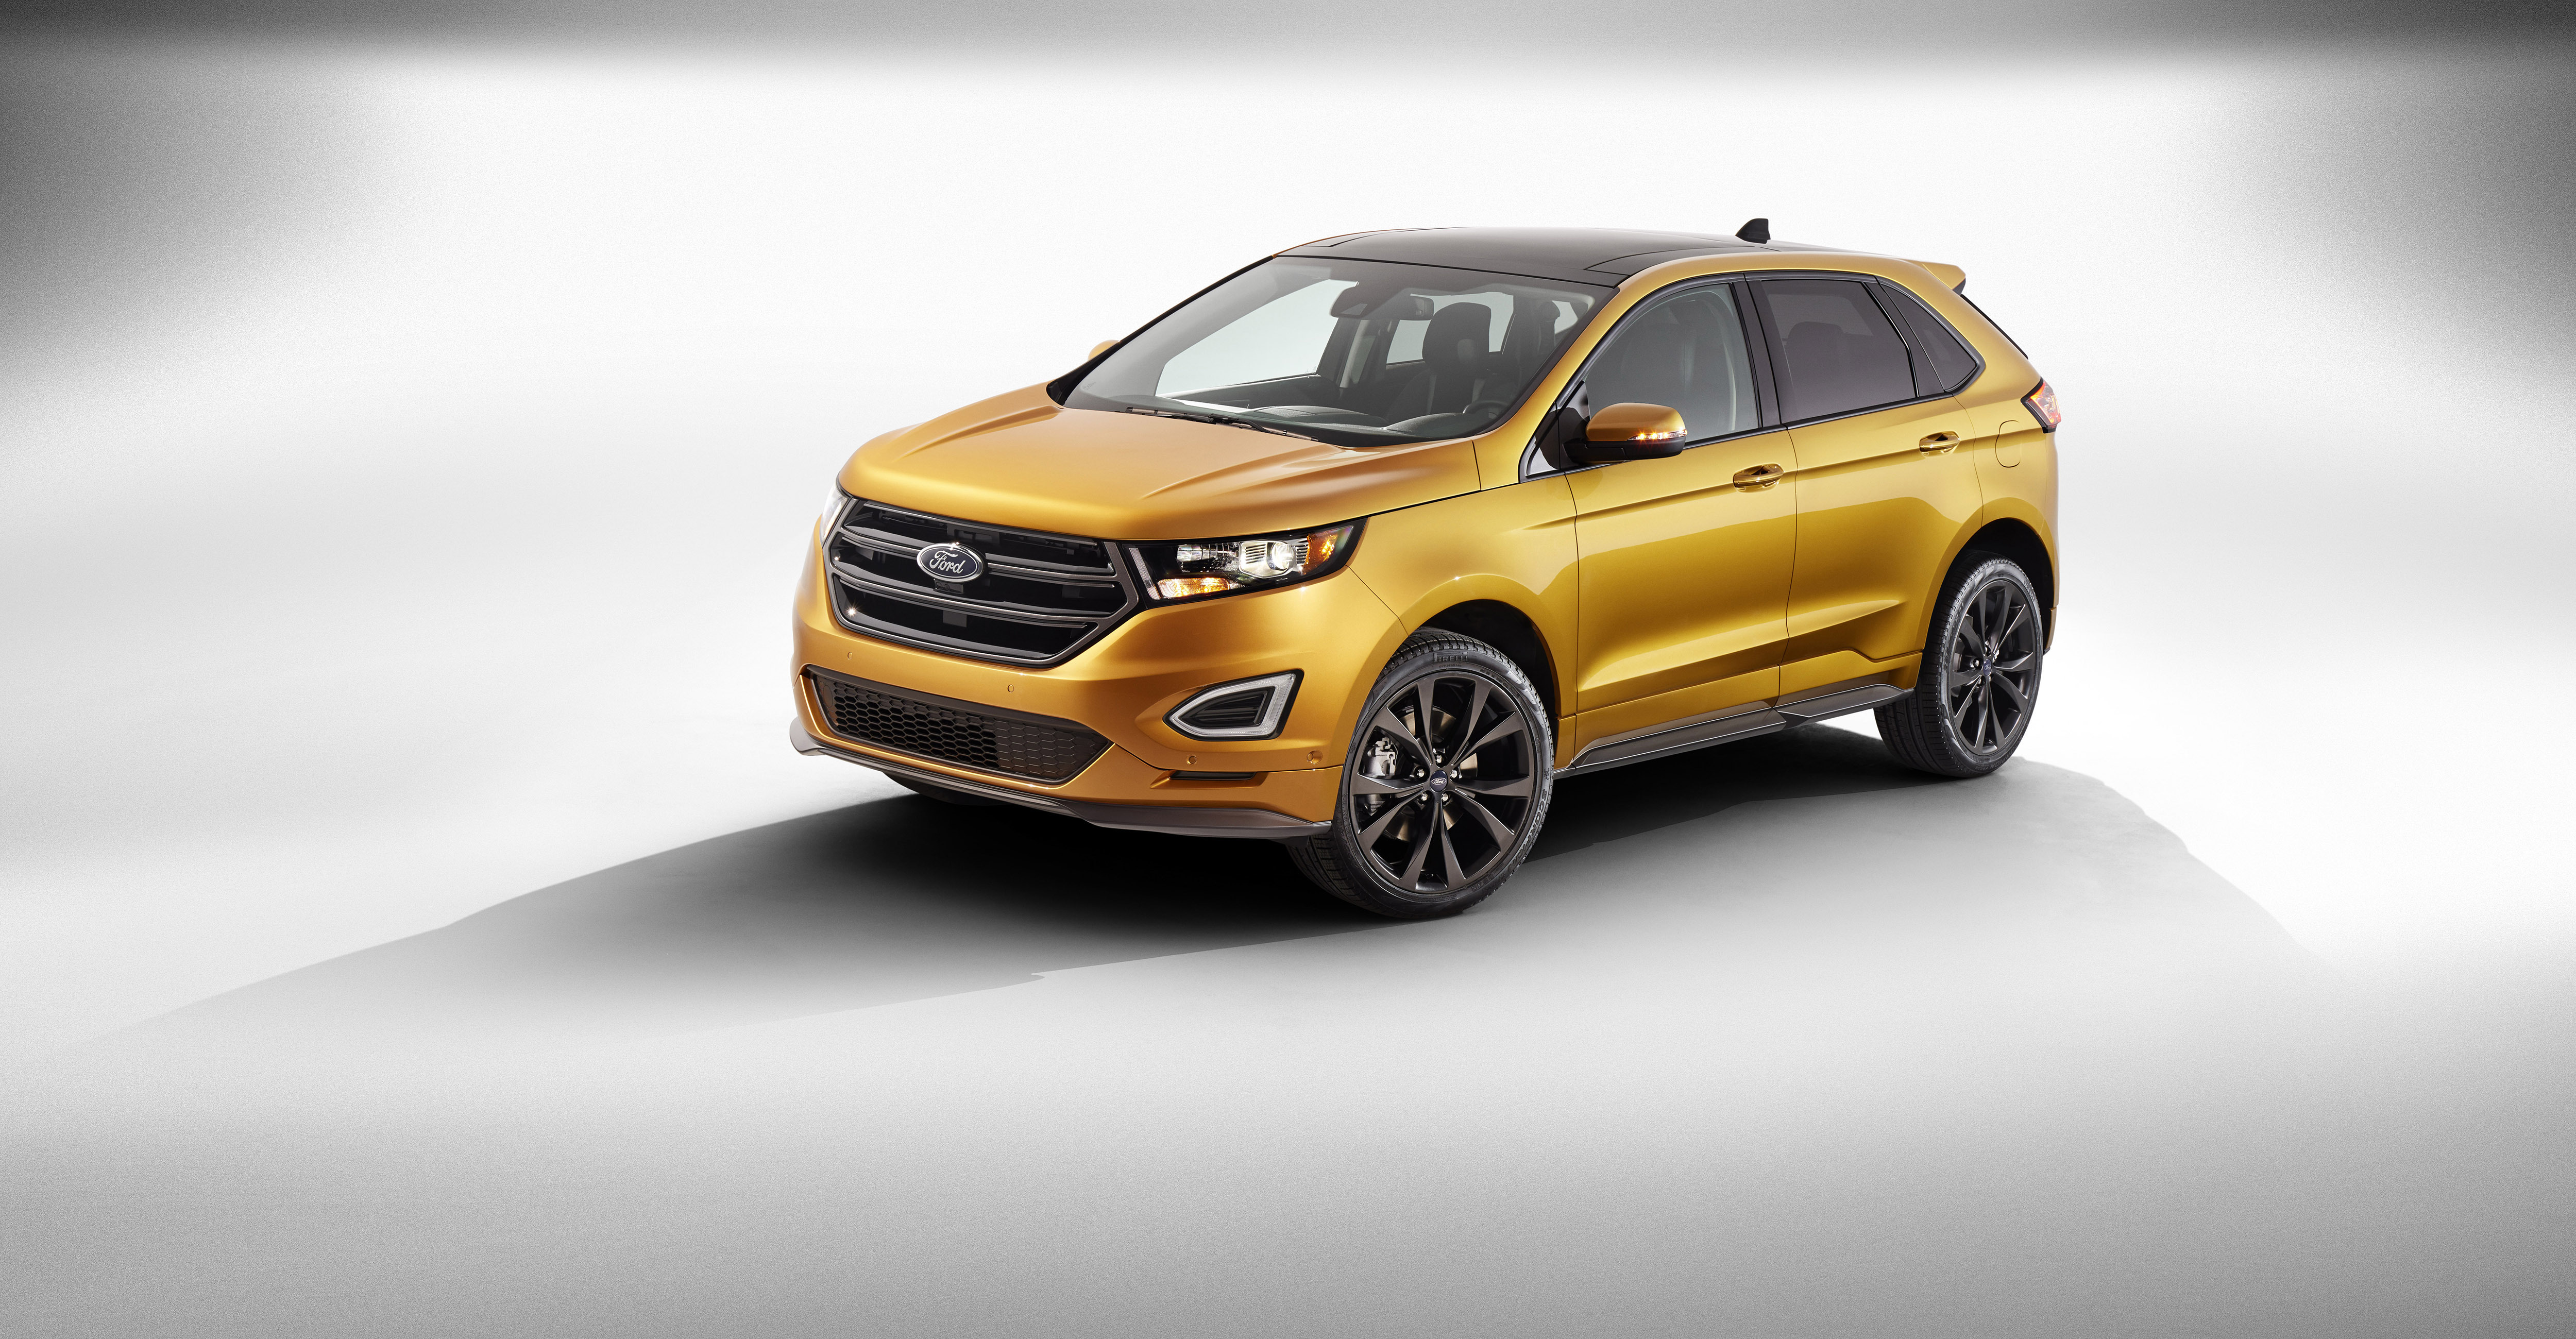 All-new Ford Edge is a showcase of Ford innovation - from a new design that excites to technology that comforts, the all-new Edge sets a new benchmark for Ford utility vehicles. (Photo: Business Wire)